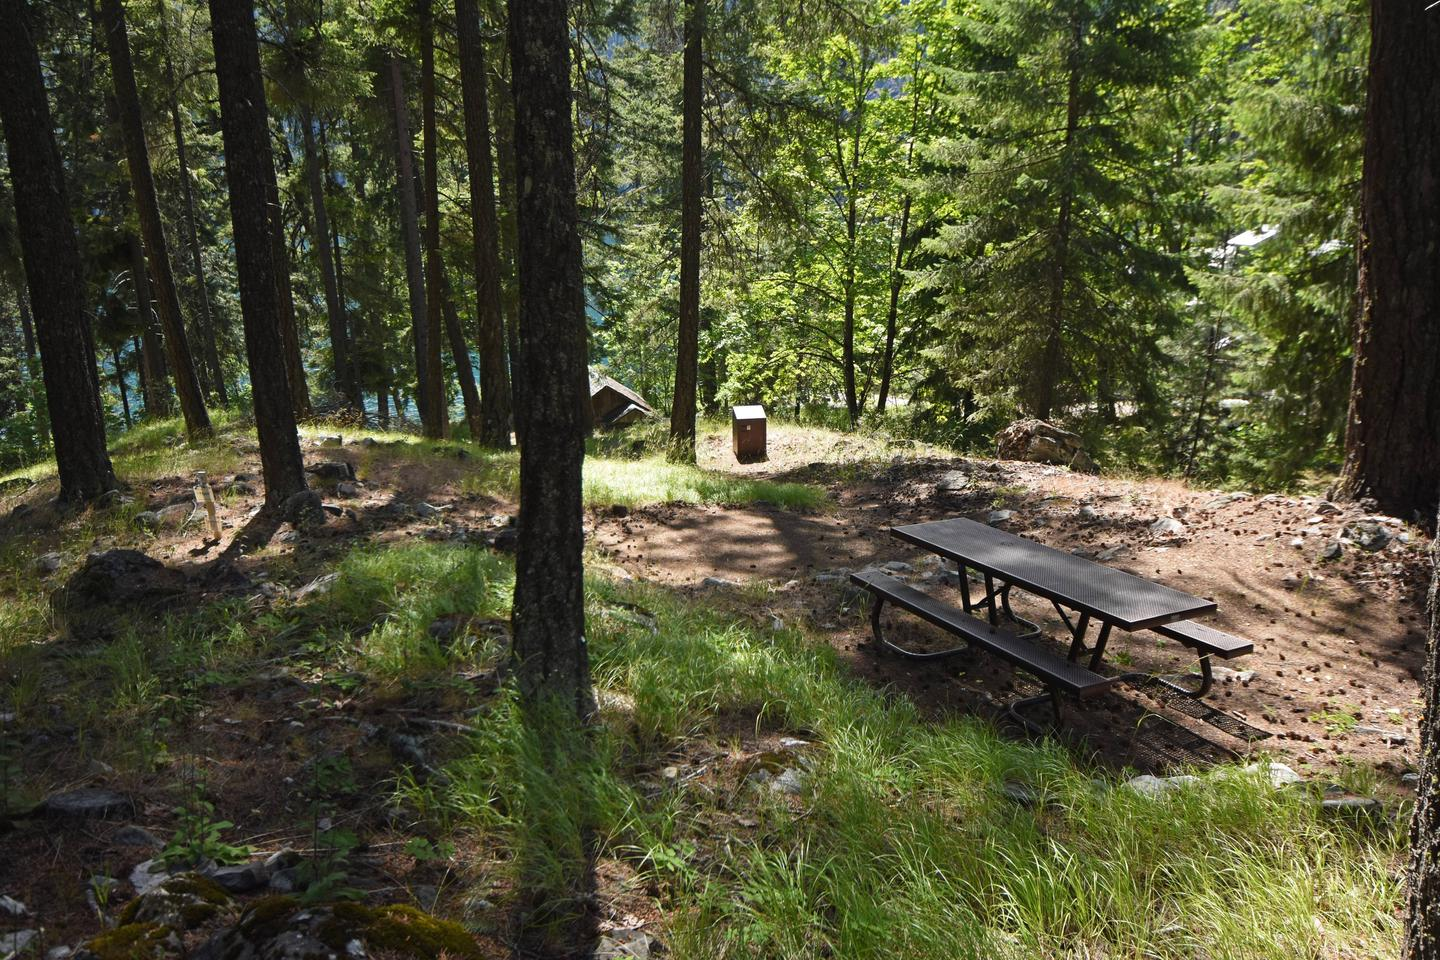 Lakeview site 9 with picnic table and tent pads in ponderosa pine forestLakeview Site 9